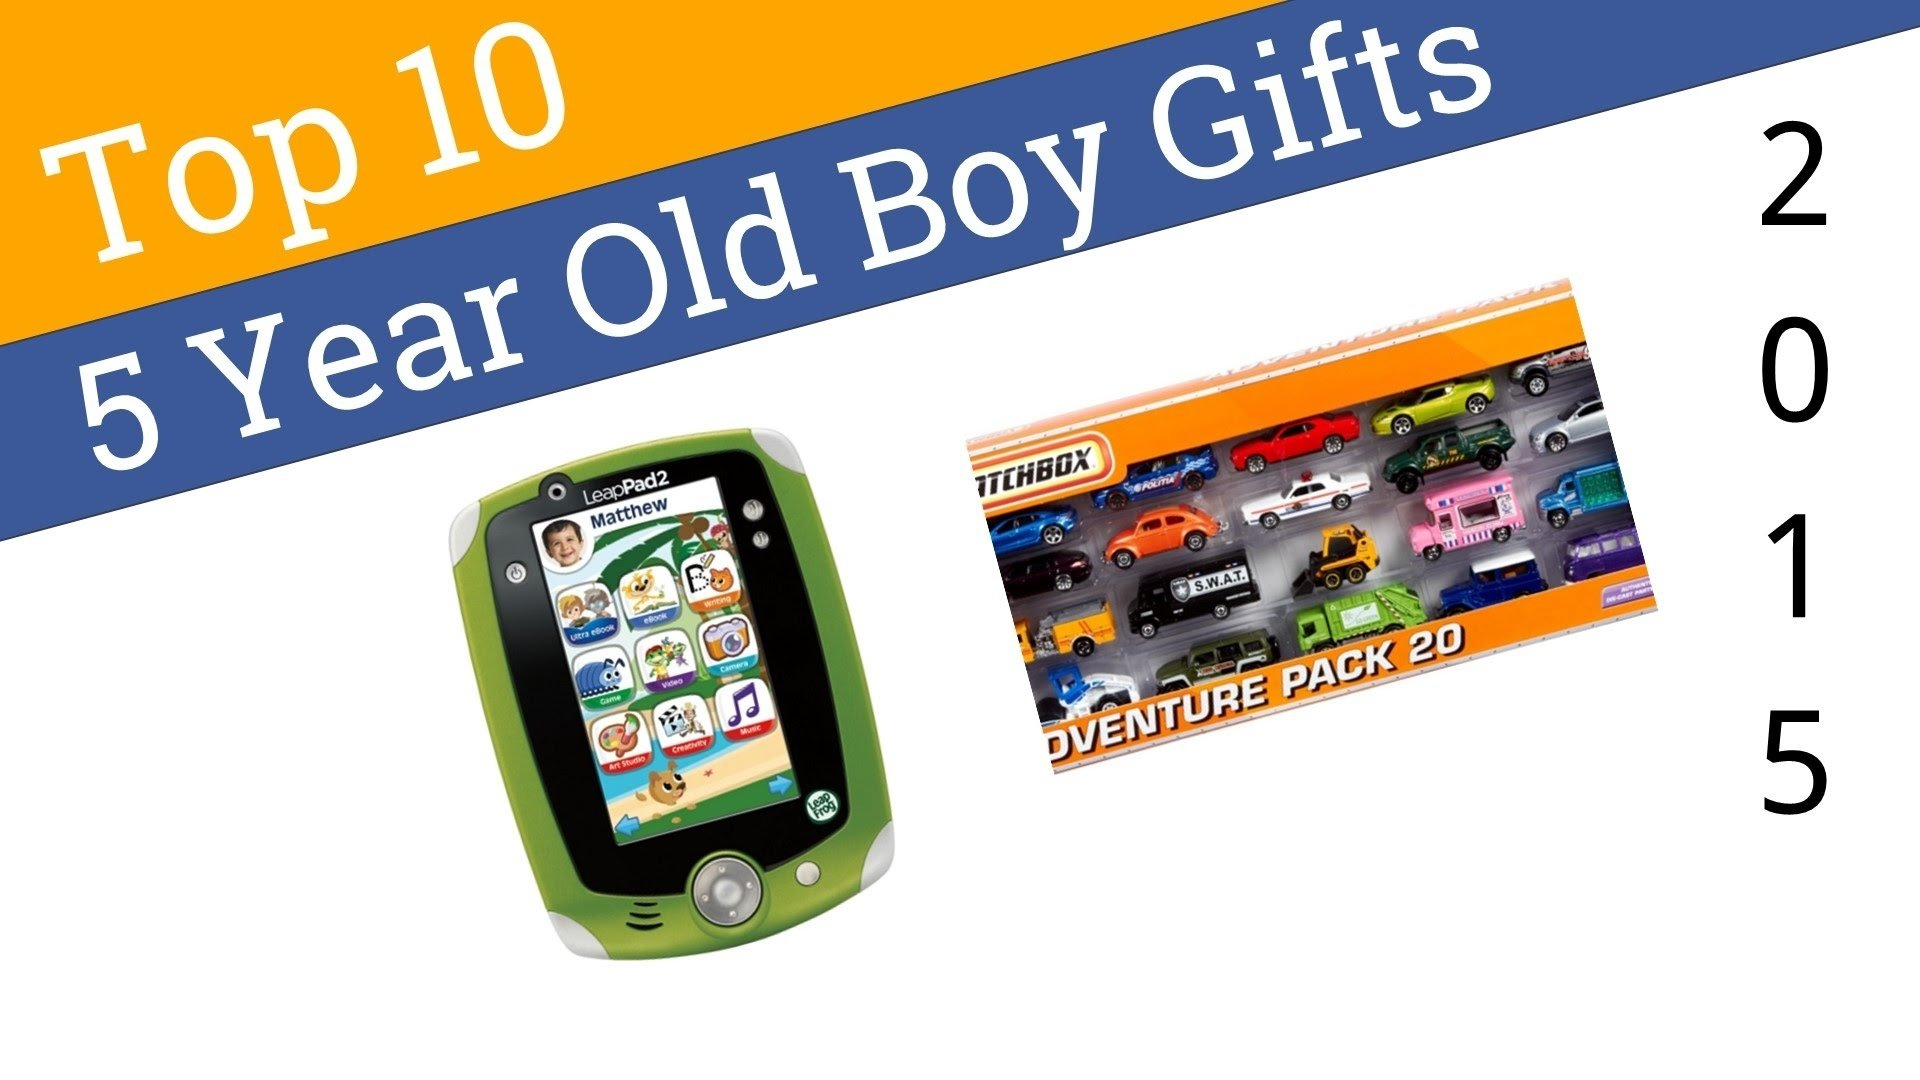 10 Awesome 5 Year Old Gift Ideas 10 best 5 year old boy gifts 2015 youtube 14 2020